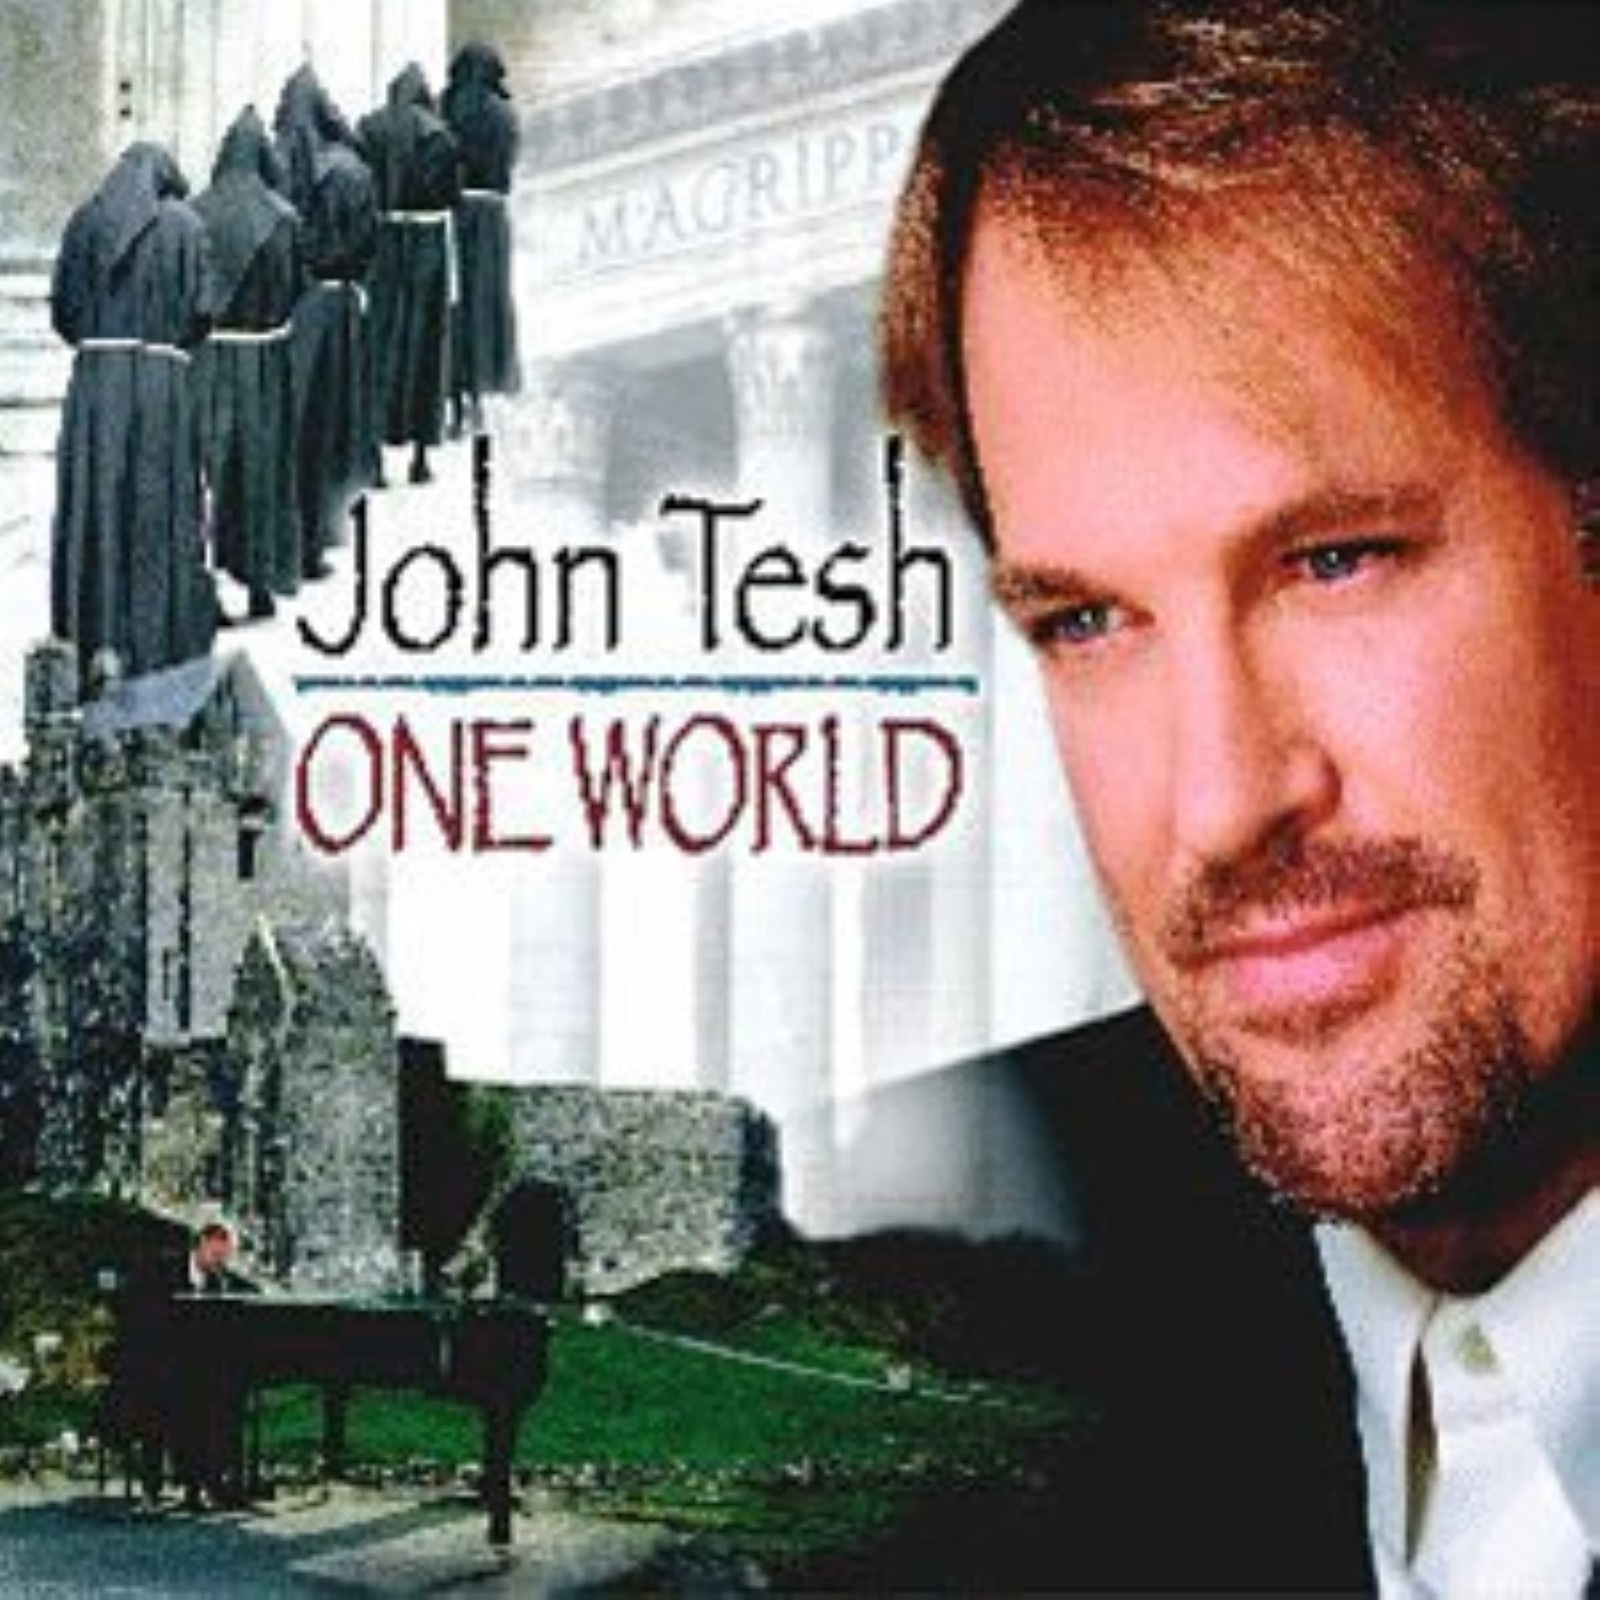 One World by John Tesh Cd